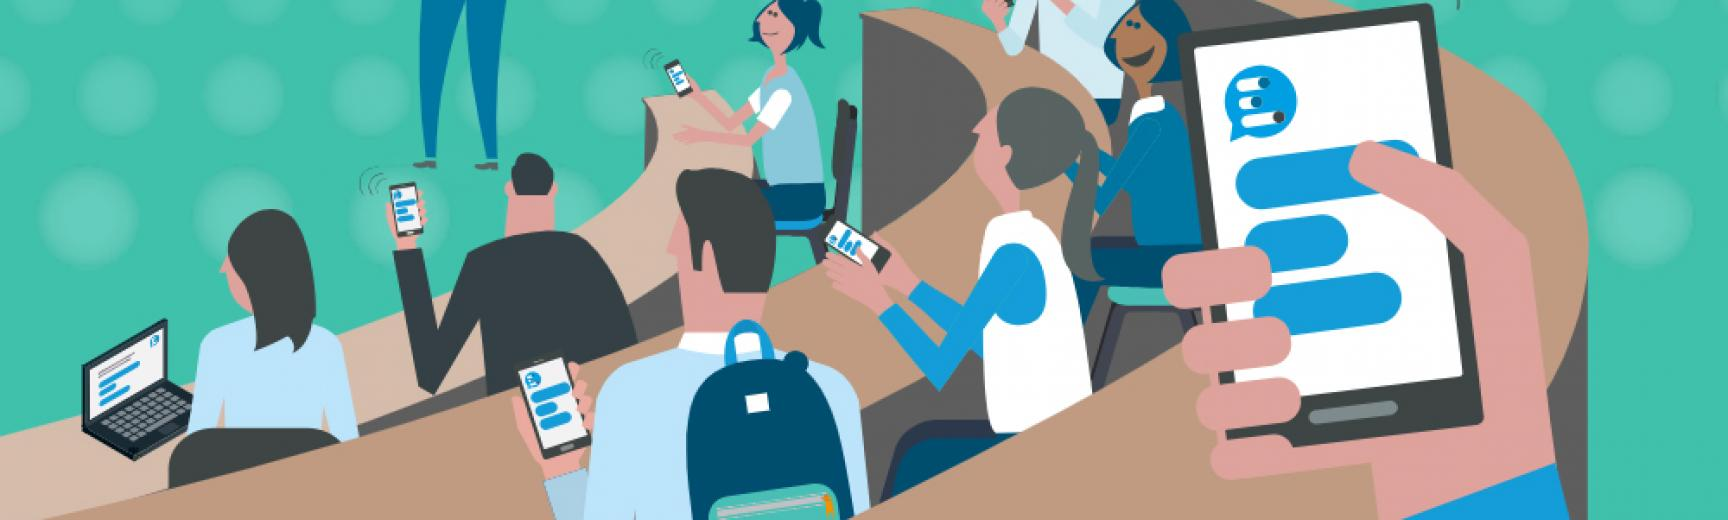 Cartoon artwork of a lecturer asking students questions on the whiteboard and they answer using Meetoo on their devices